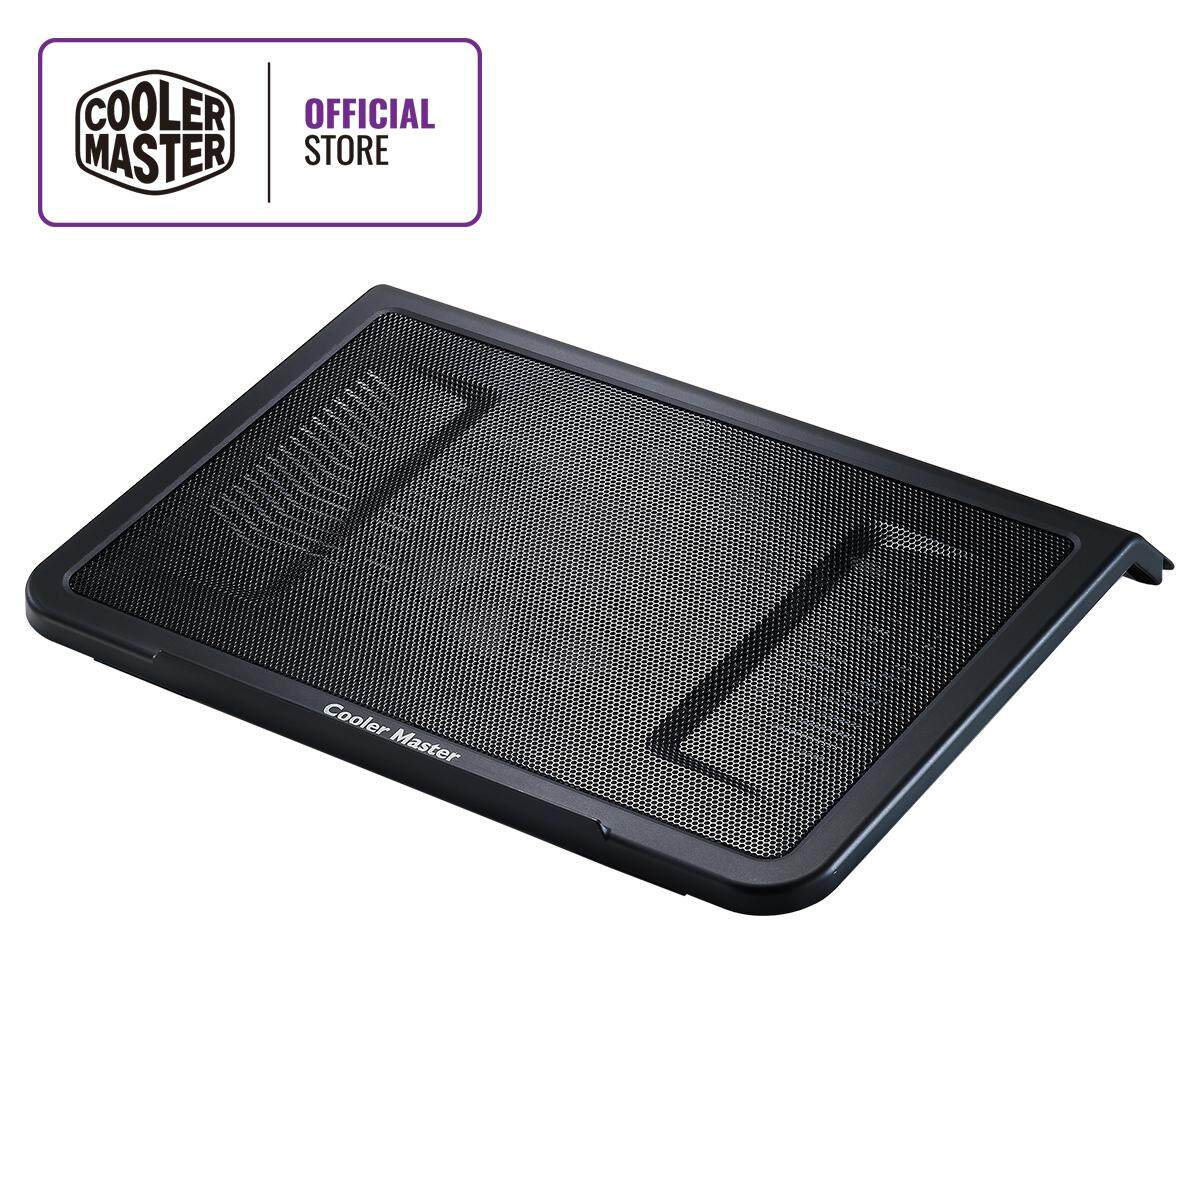 "Cooler Master Notepal L1 Notebook Cooler, Slim & Lightweight, 160mm Fan, Metal Mesh Board, USB Port Extender, Cable Grooves, Up to 17"" Notebooks Malaysia"